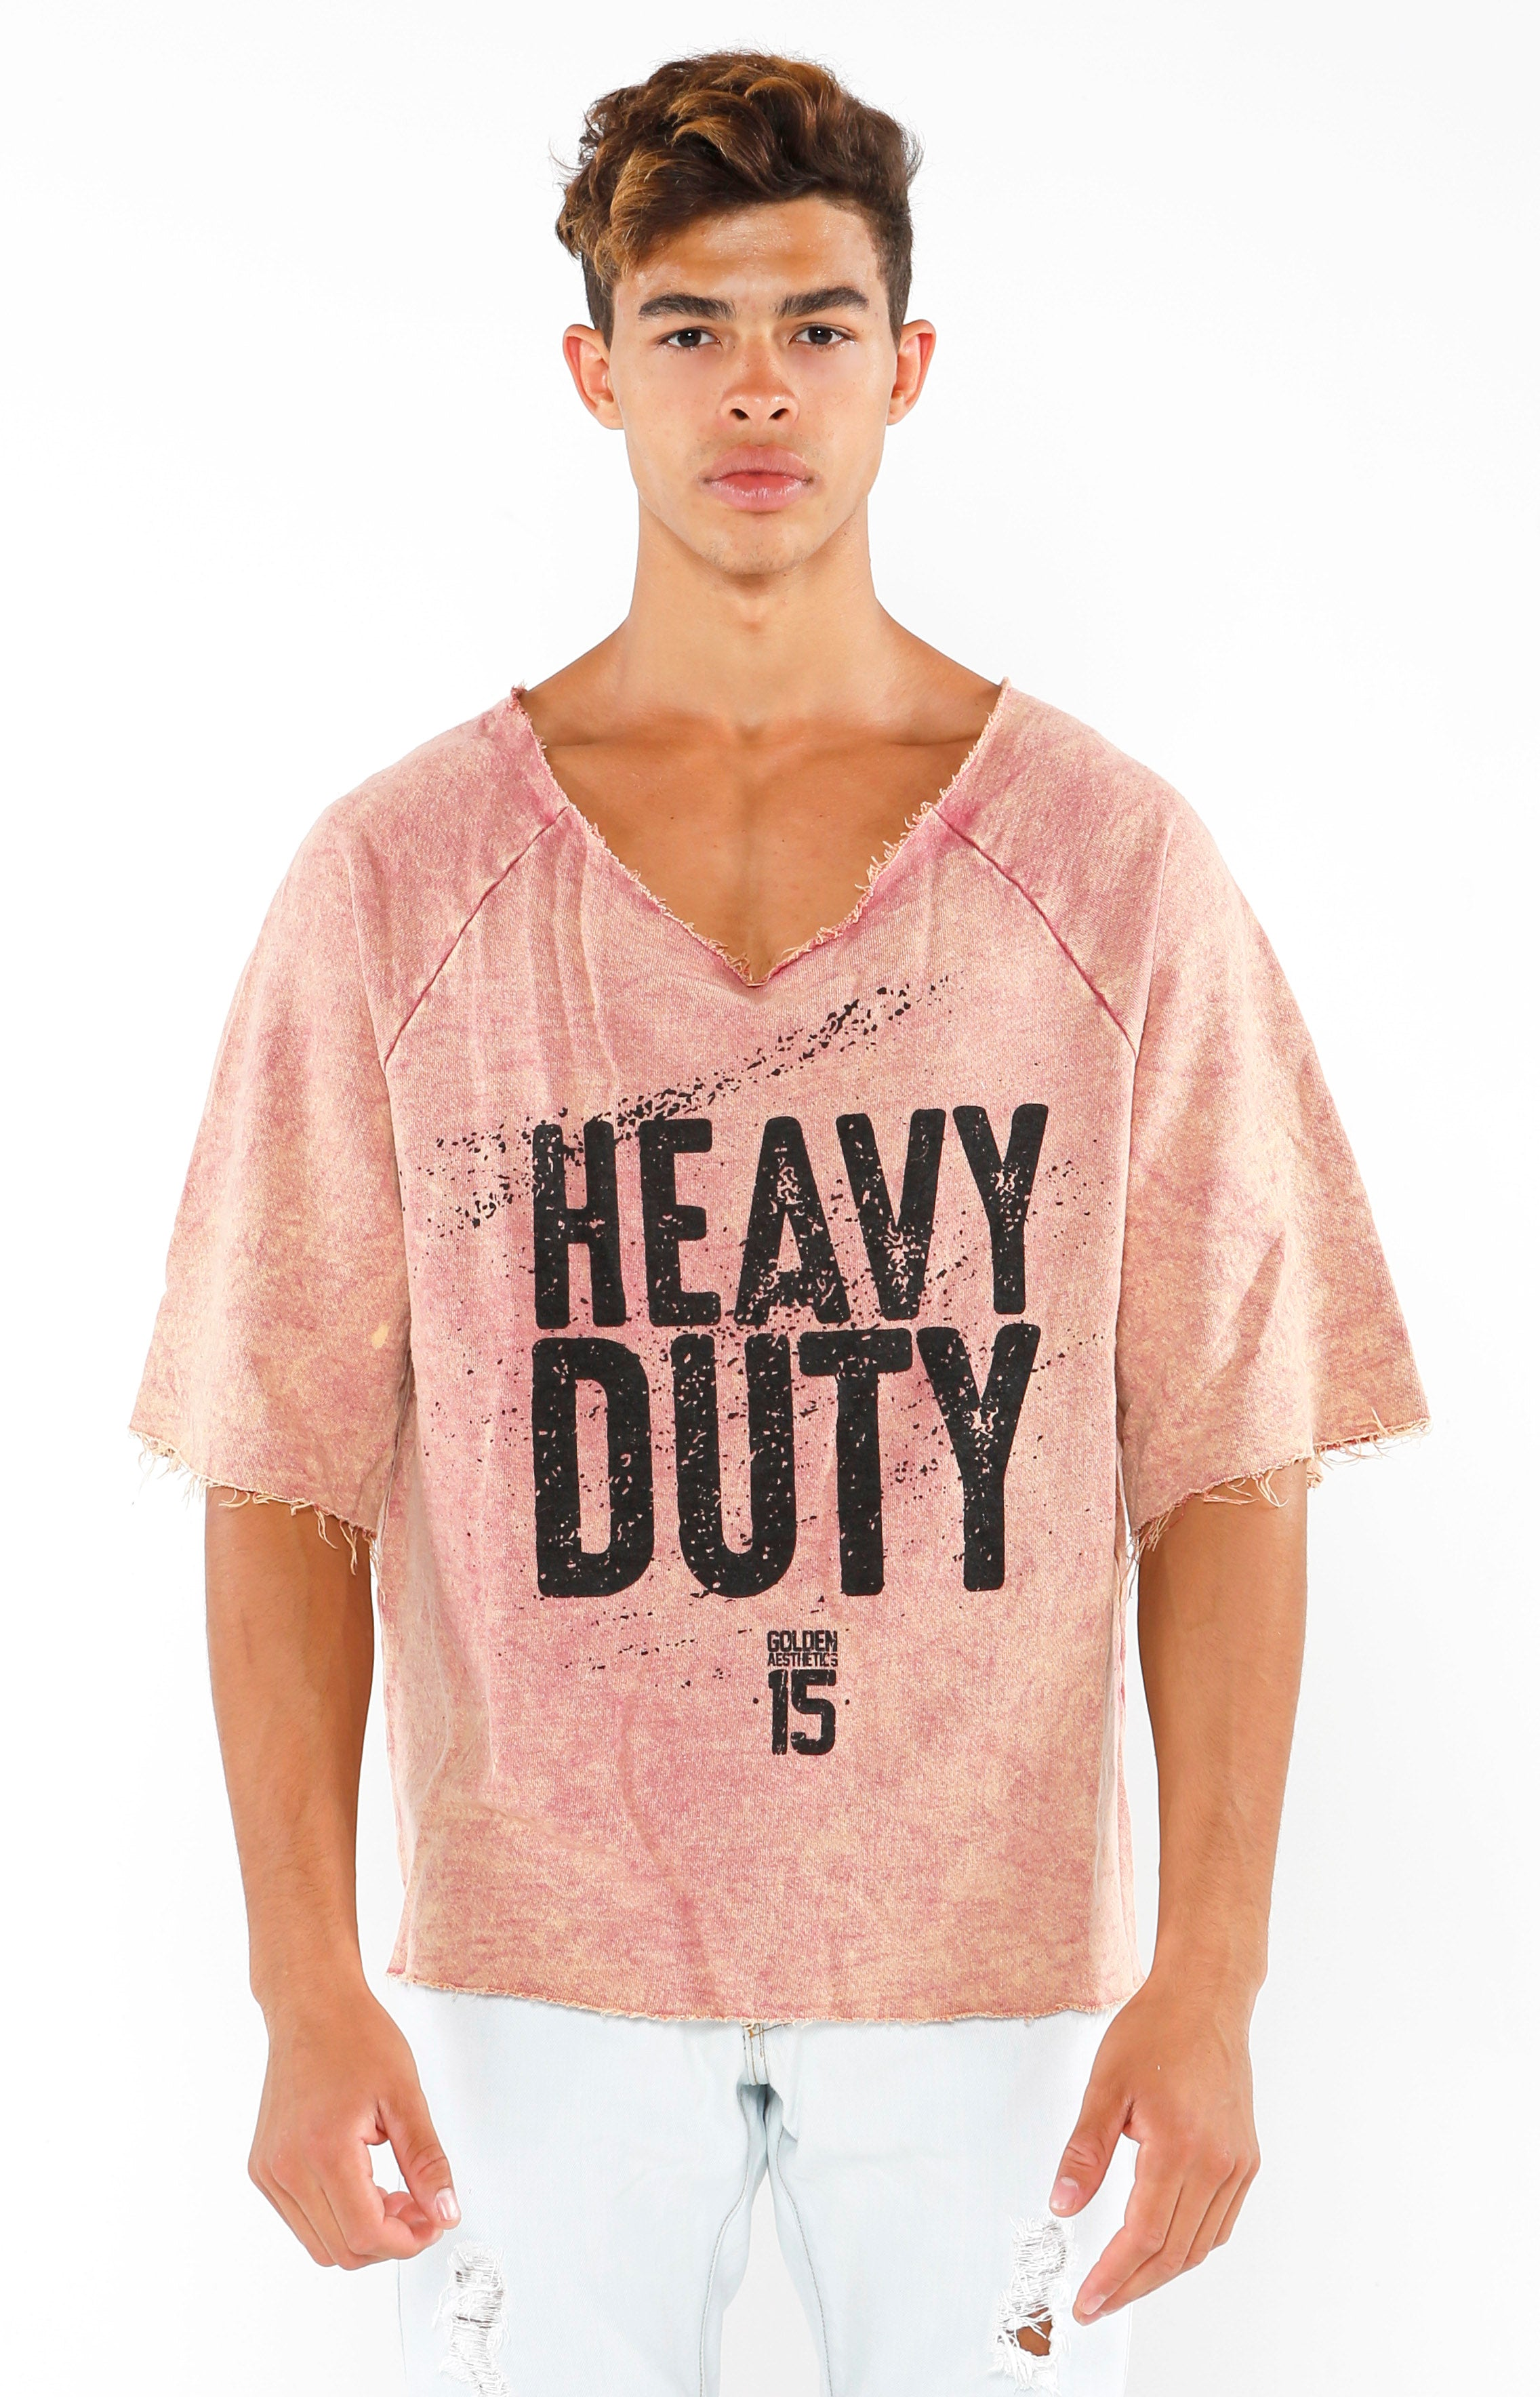 Heavy Duty Raw Cut Top - Faded Red/Black - Golden Aesthetics